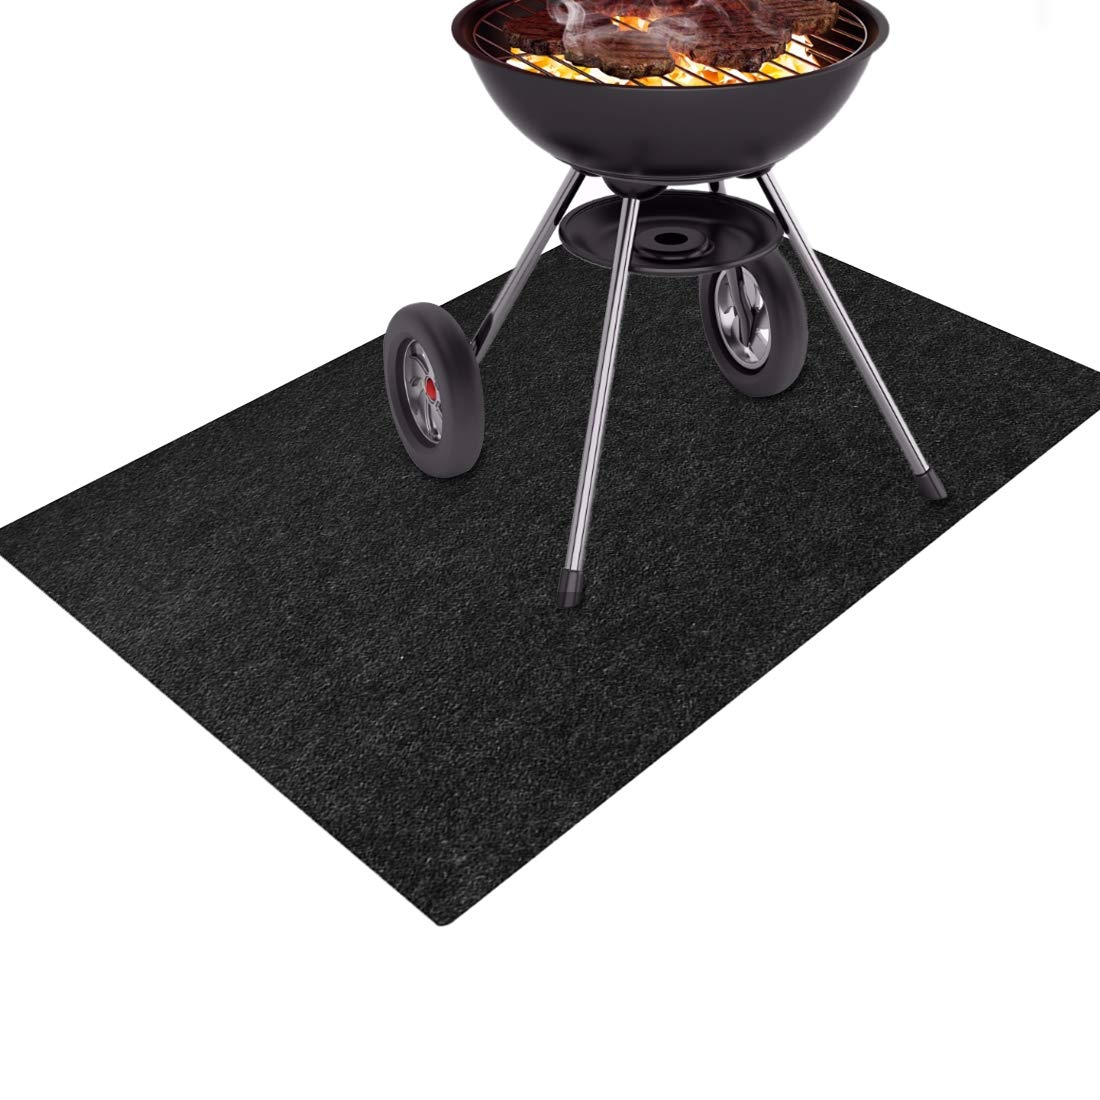 Together-life Gas Grill Splatter Mat, BBQ Fireproof Floor Mats Heat Resistant Non Stick Barbecue Patio Protector Grilling Gear, Backyard Floor Protective Rug by Together-life